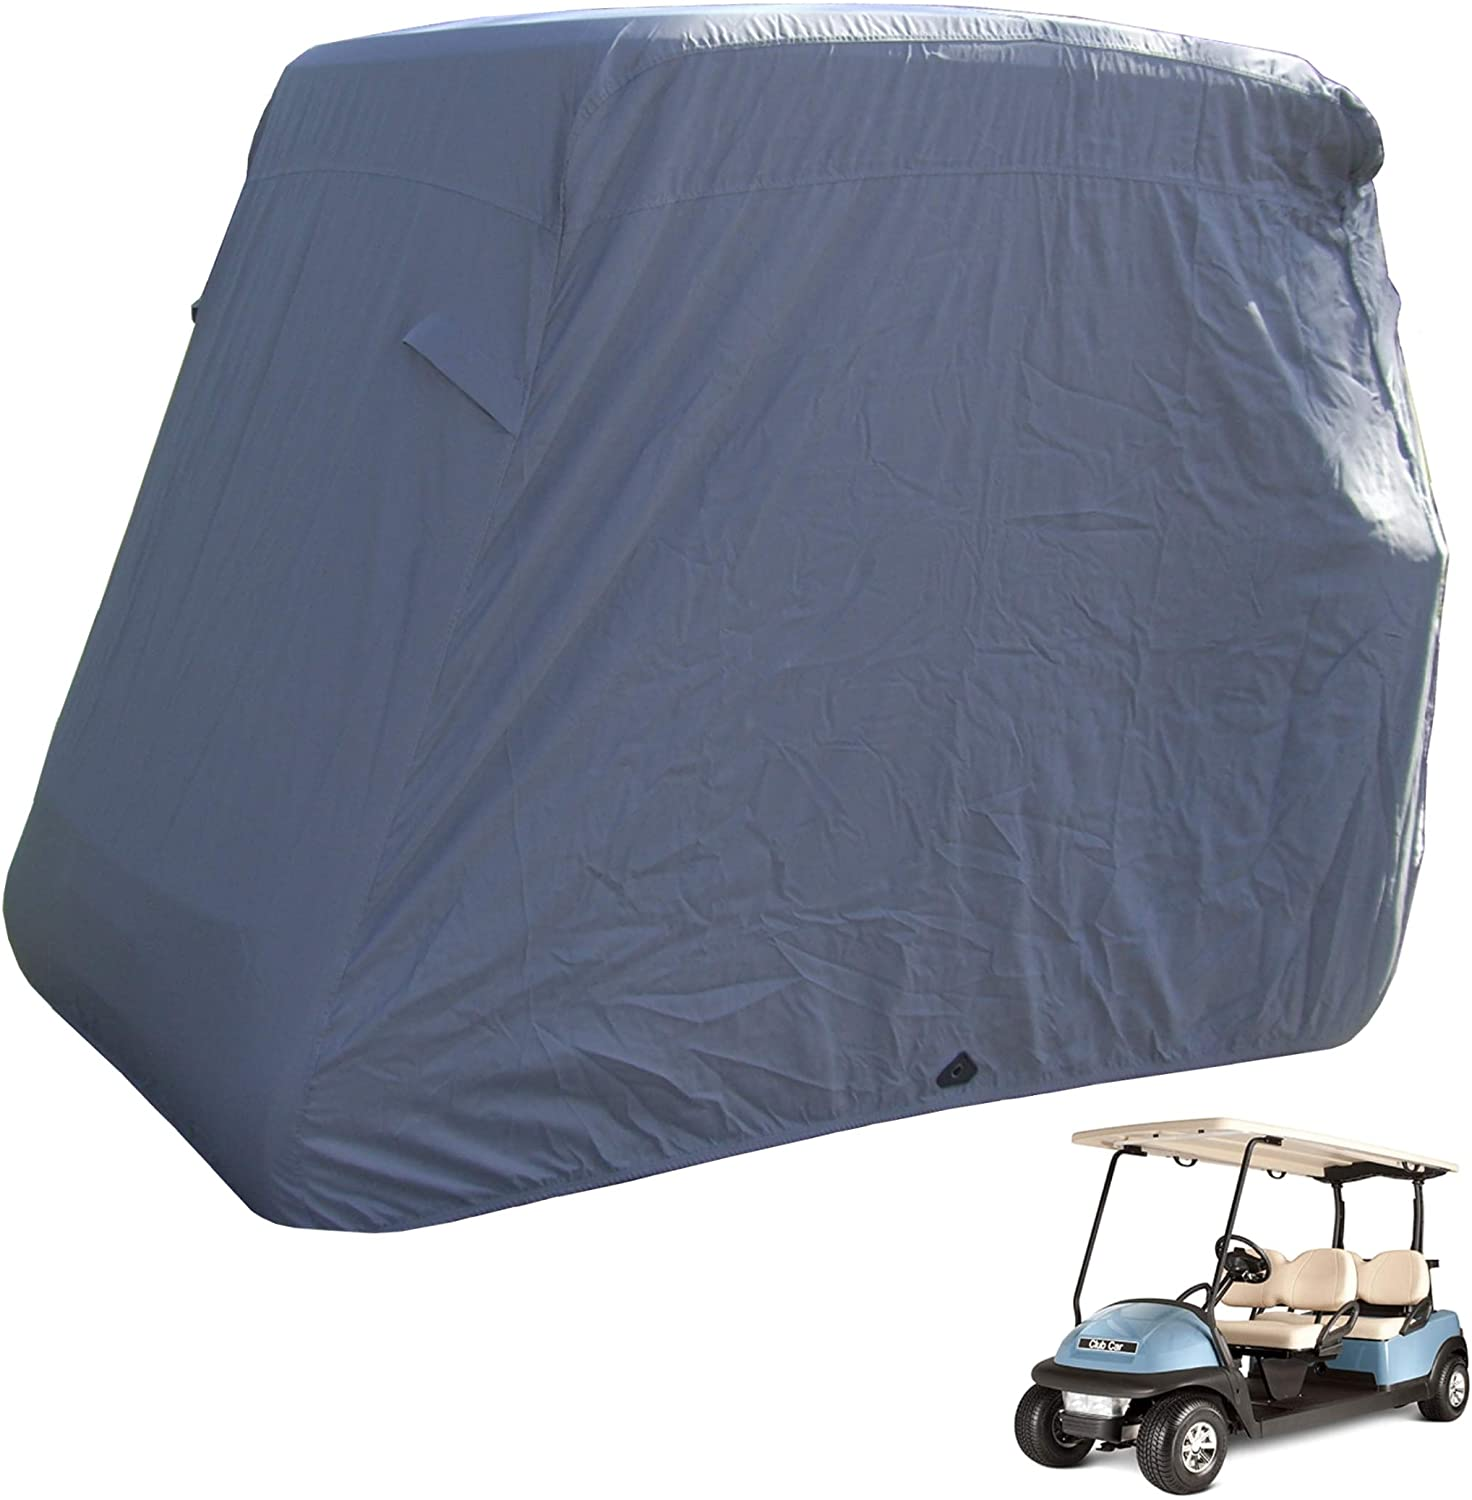 Deluxe 4-Seater Golf Cart Cover